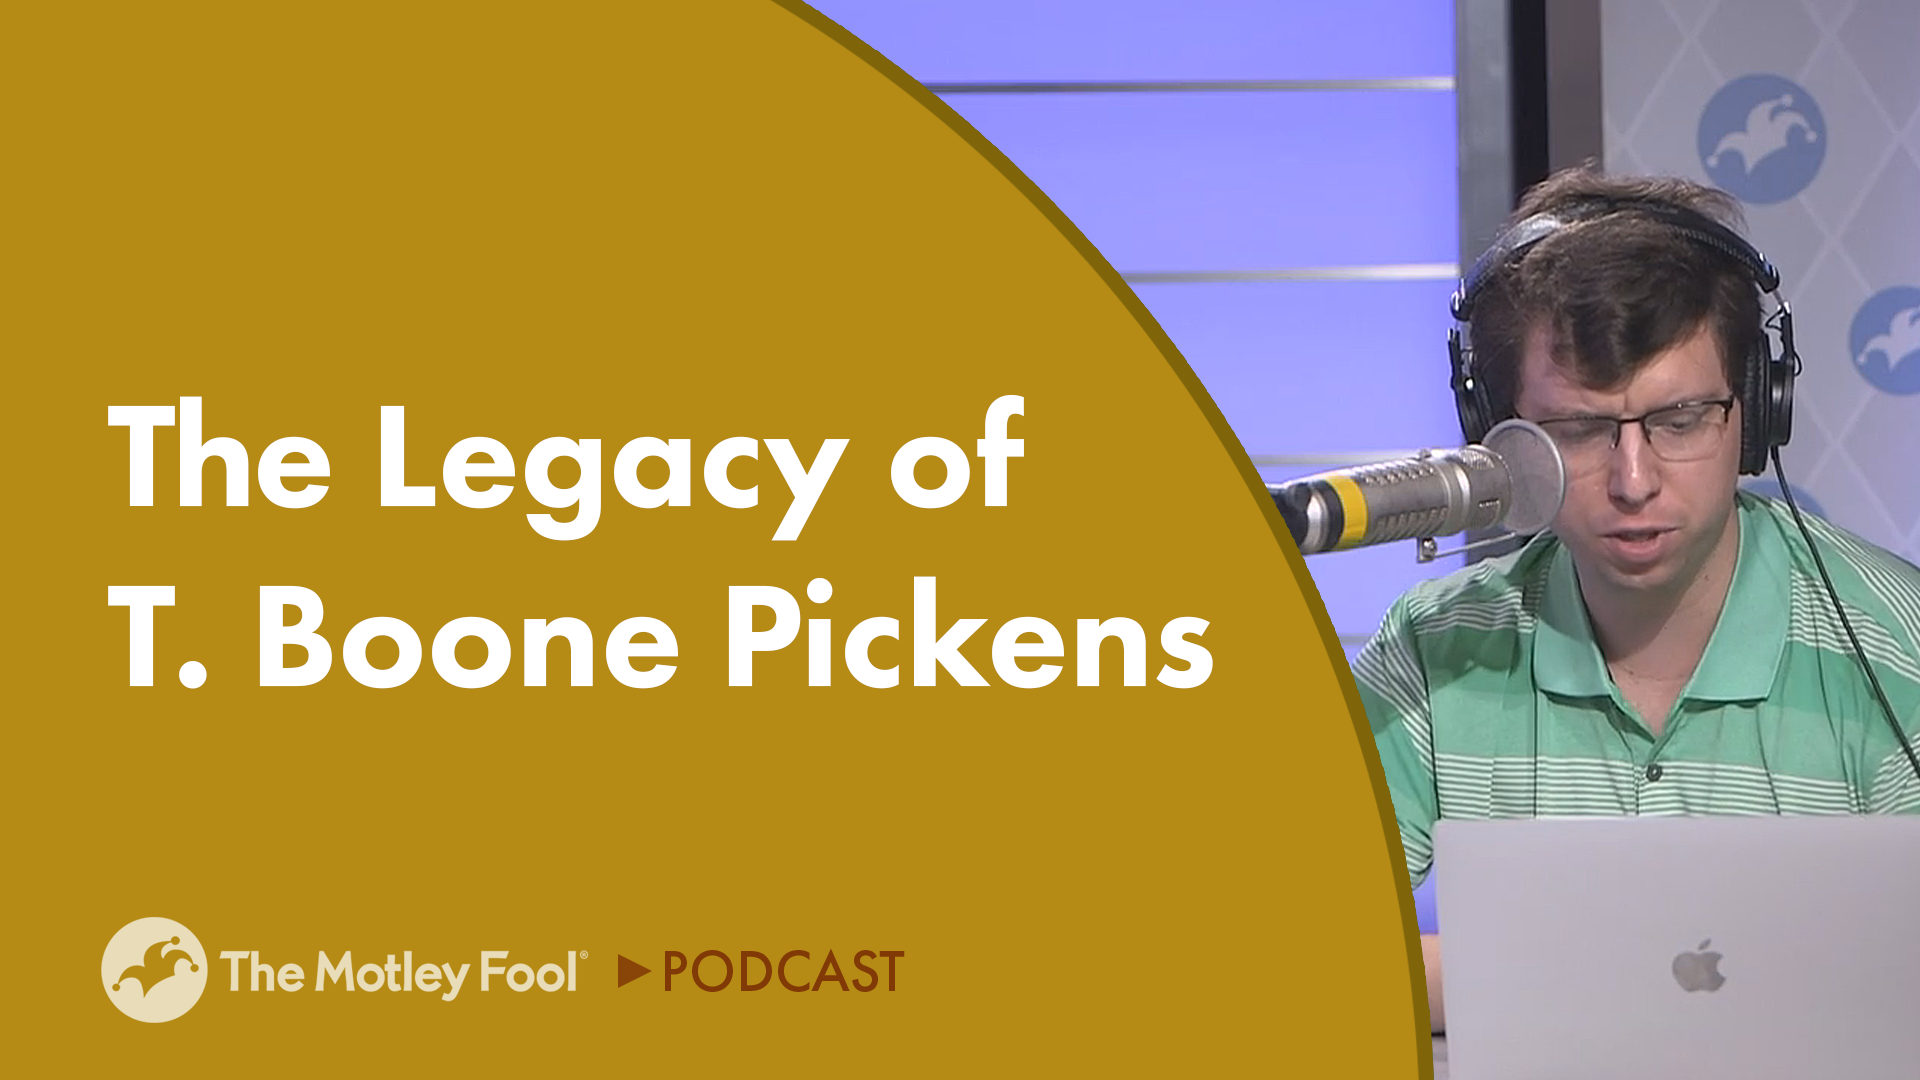 The Legacy of T. Boone Pickens